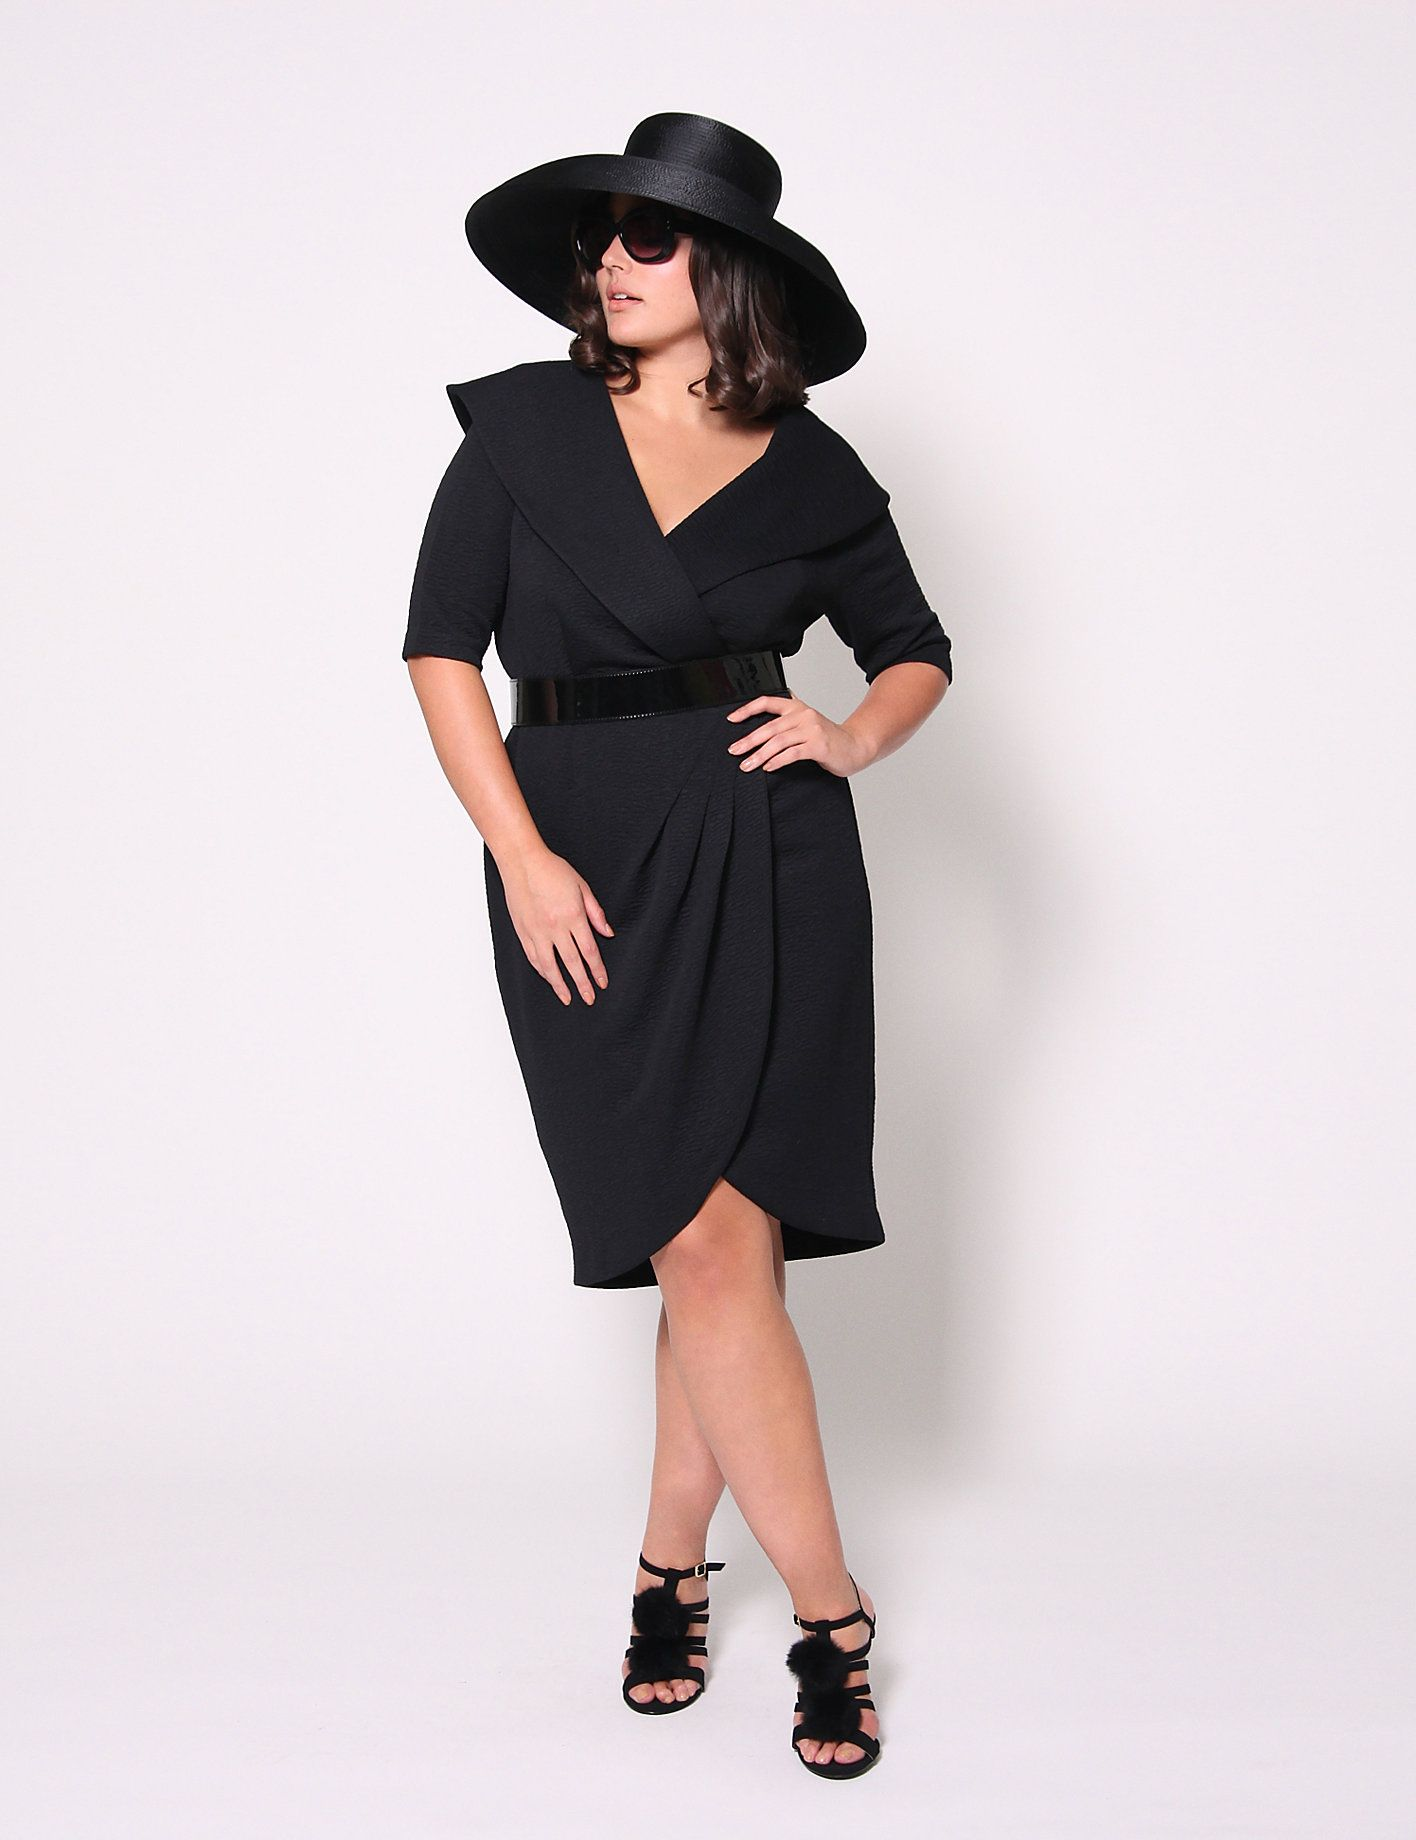 061c8ecaff1 Shop Christian Siriano - Plus Size Clothing Collection